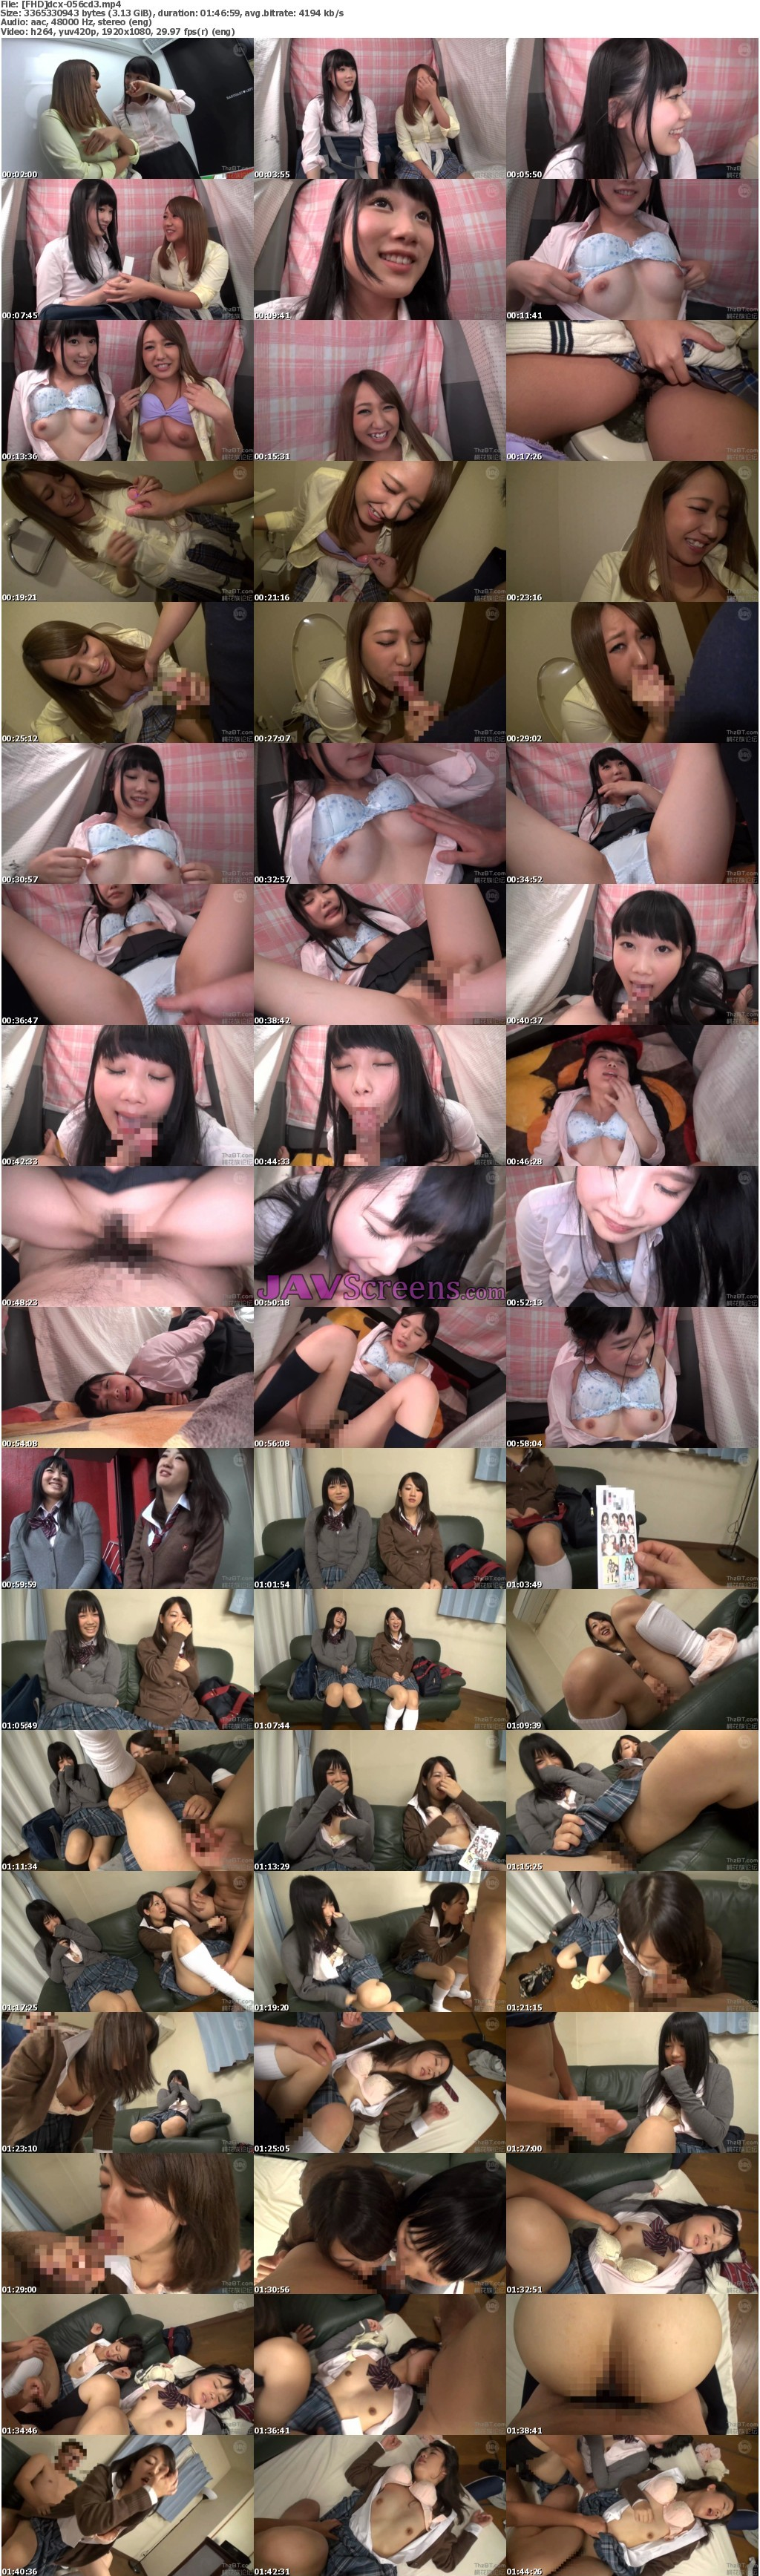 DCX-056C.jpg - JAV Screenshot